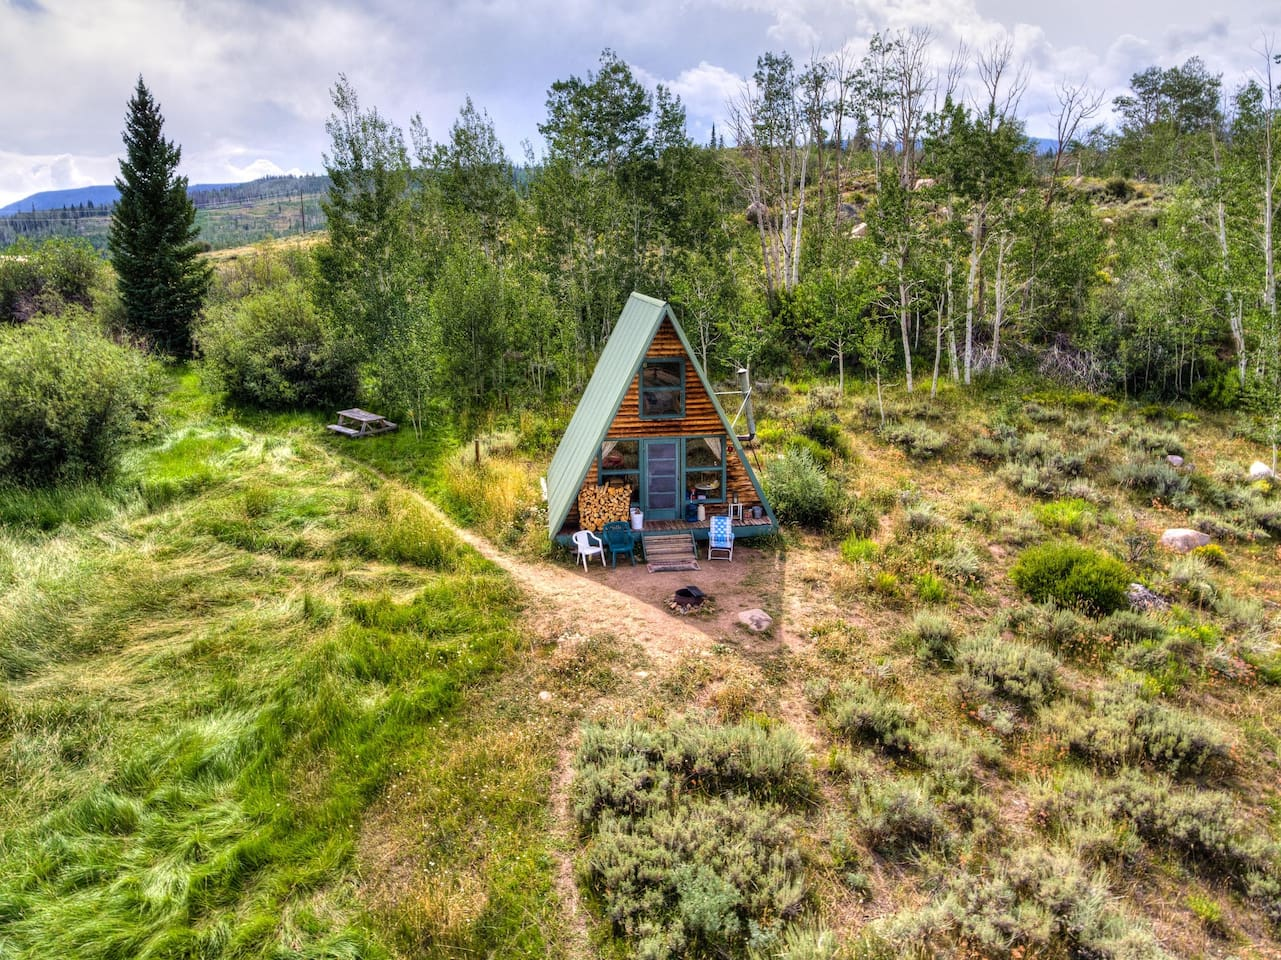 wooden a-frame surrounded by greenery filled landscape cabins in the USA